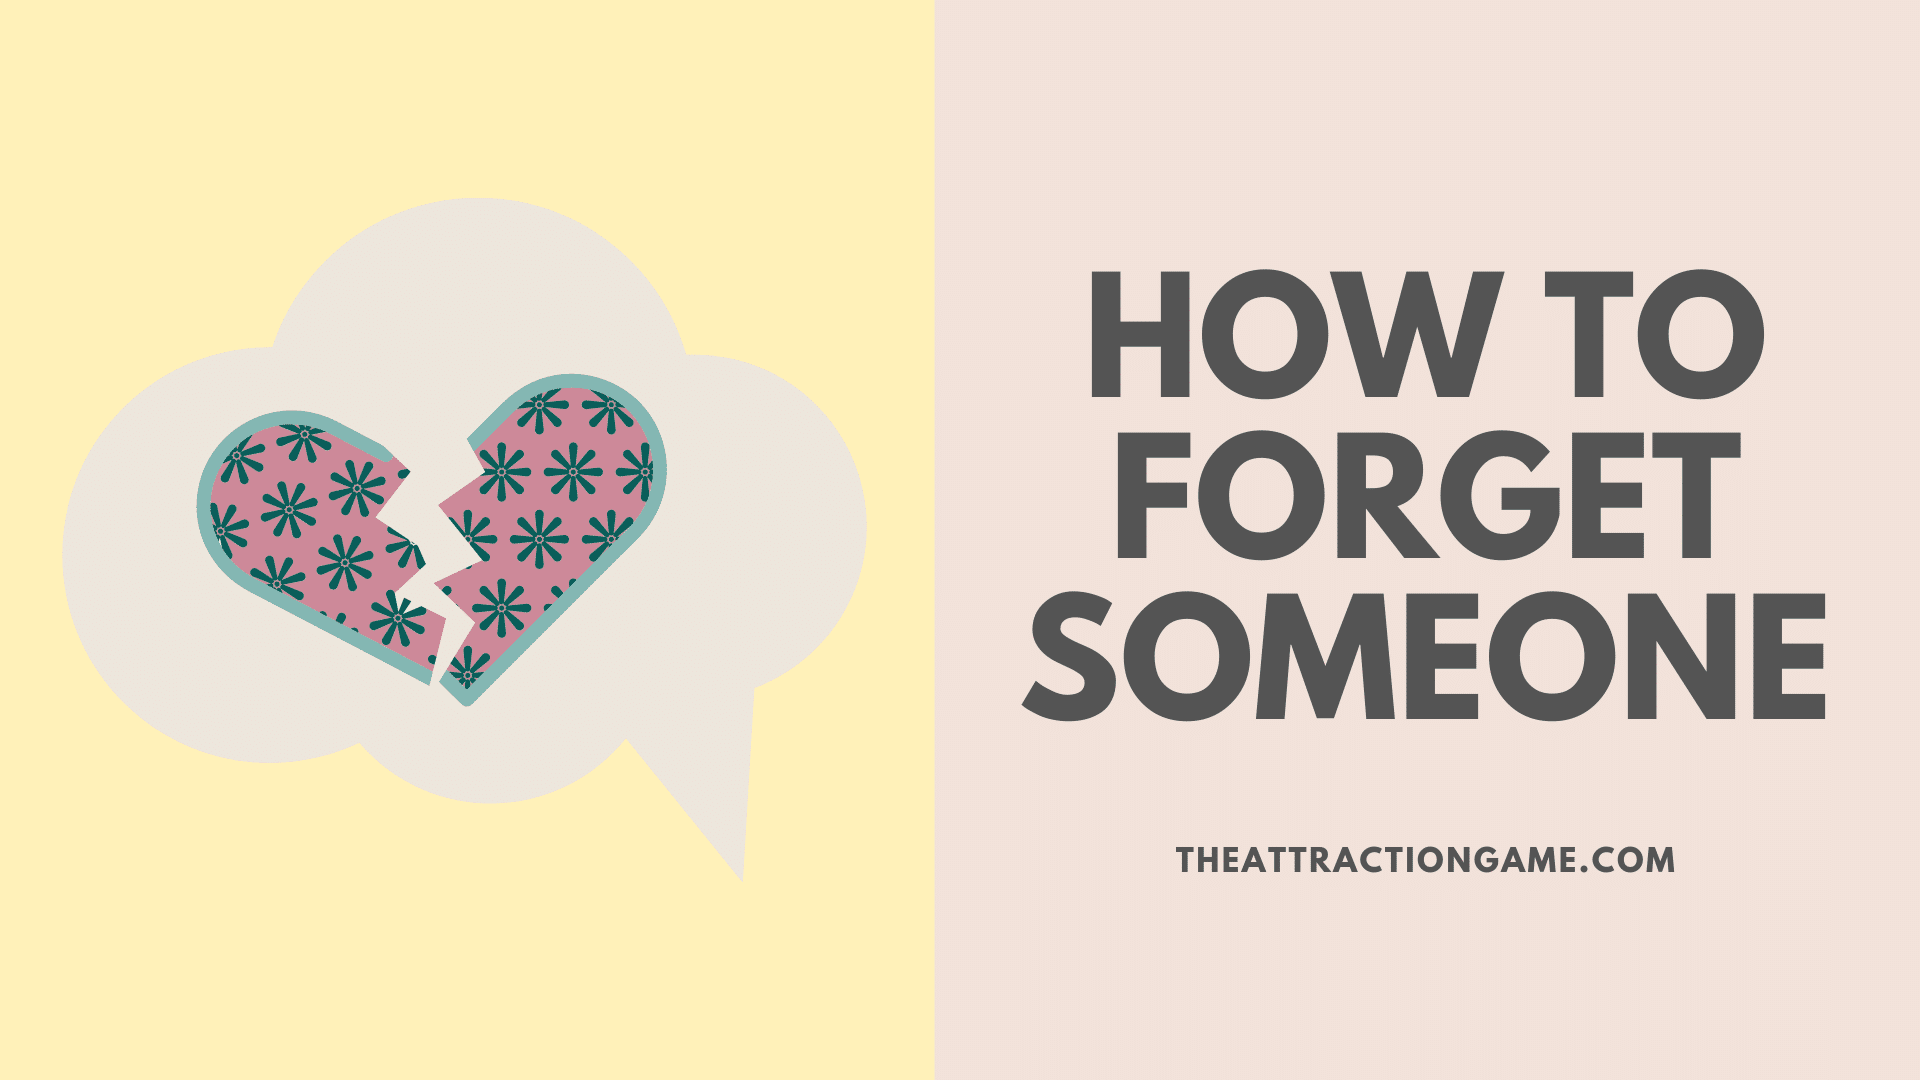 forget someone, tips to forget someone, how to forget someone, tips on forgetting someone, ways to forget someone